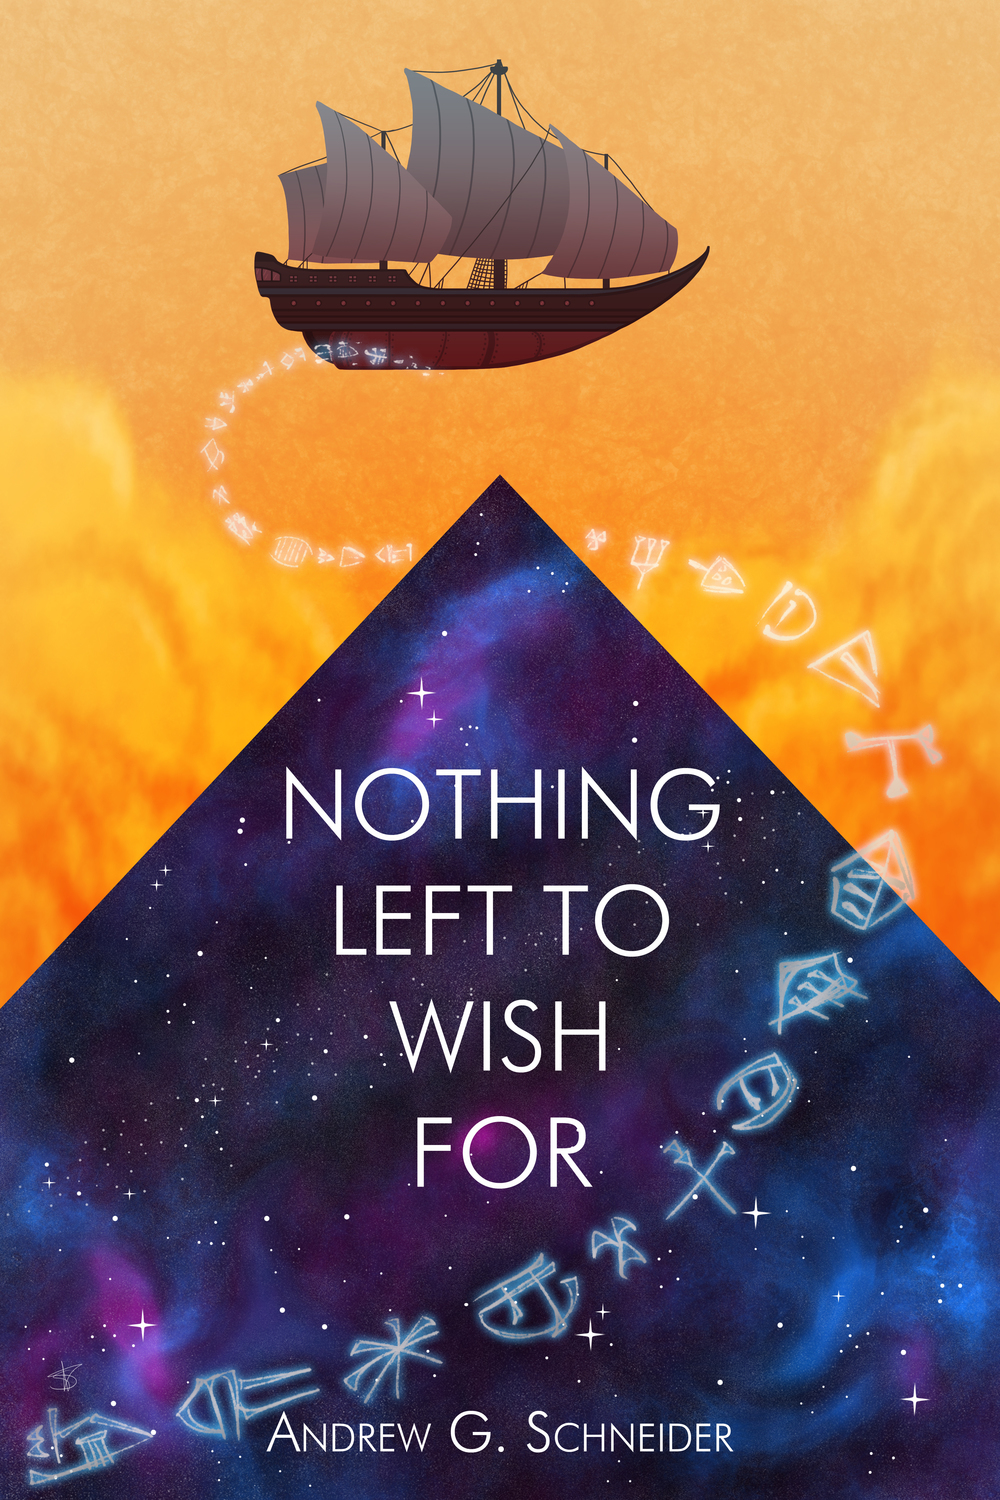 Nothing Left to Wish For